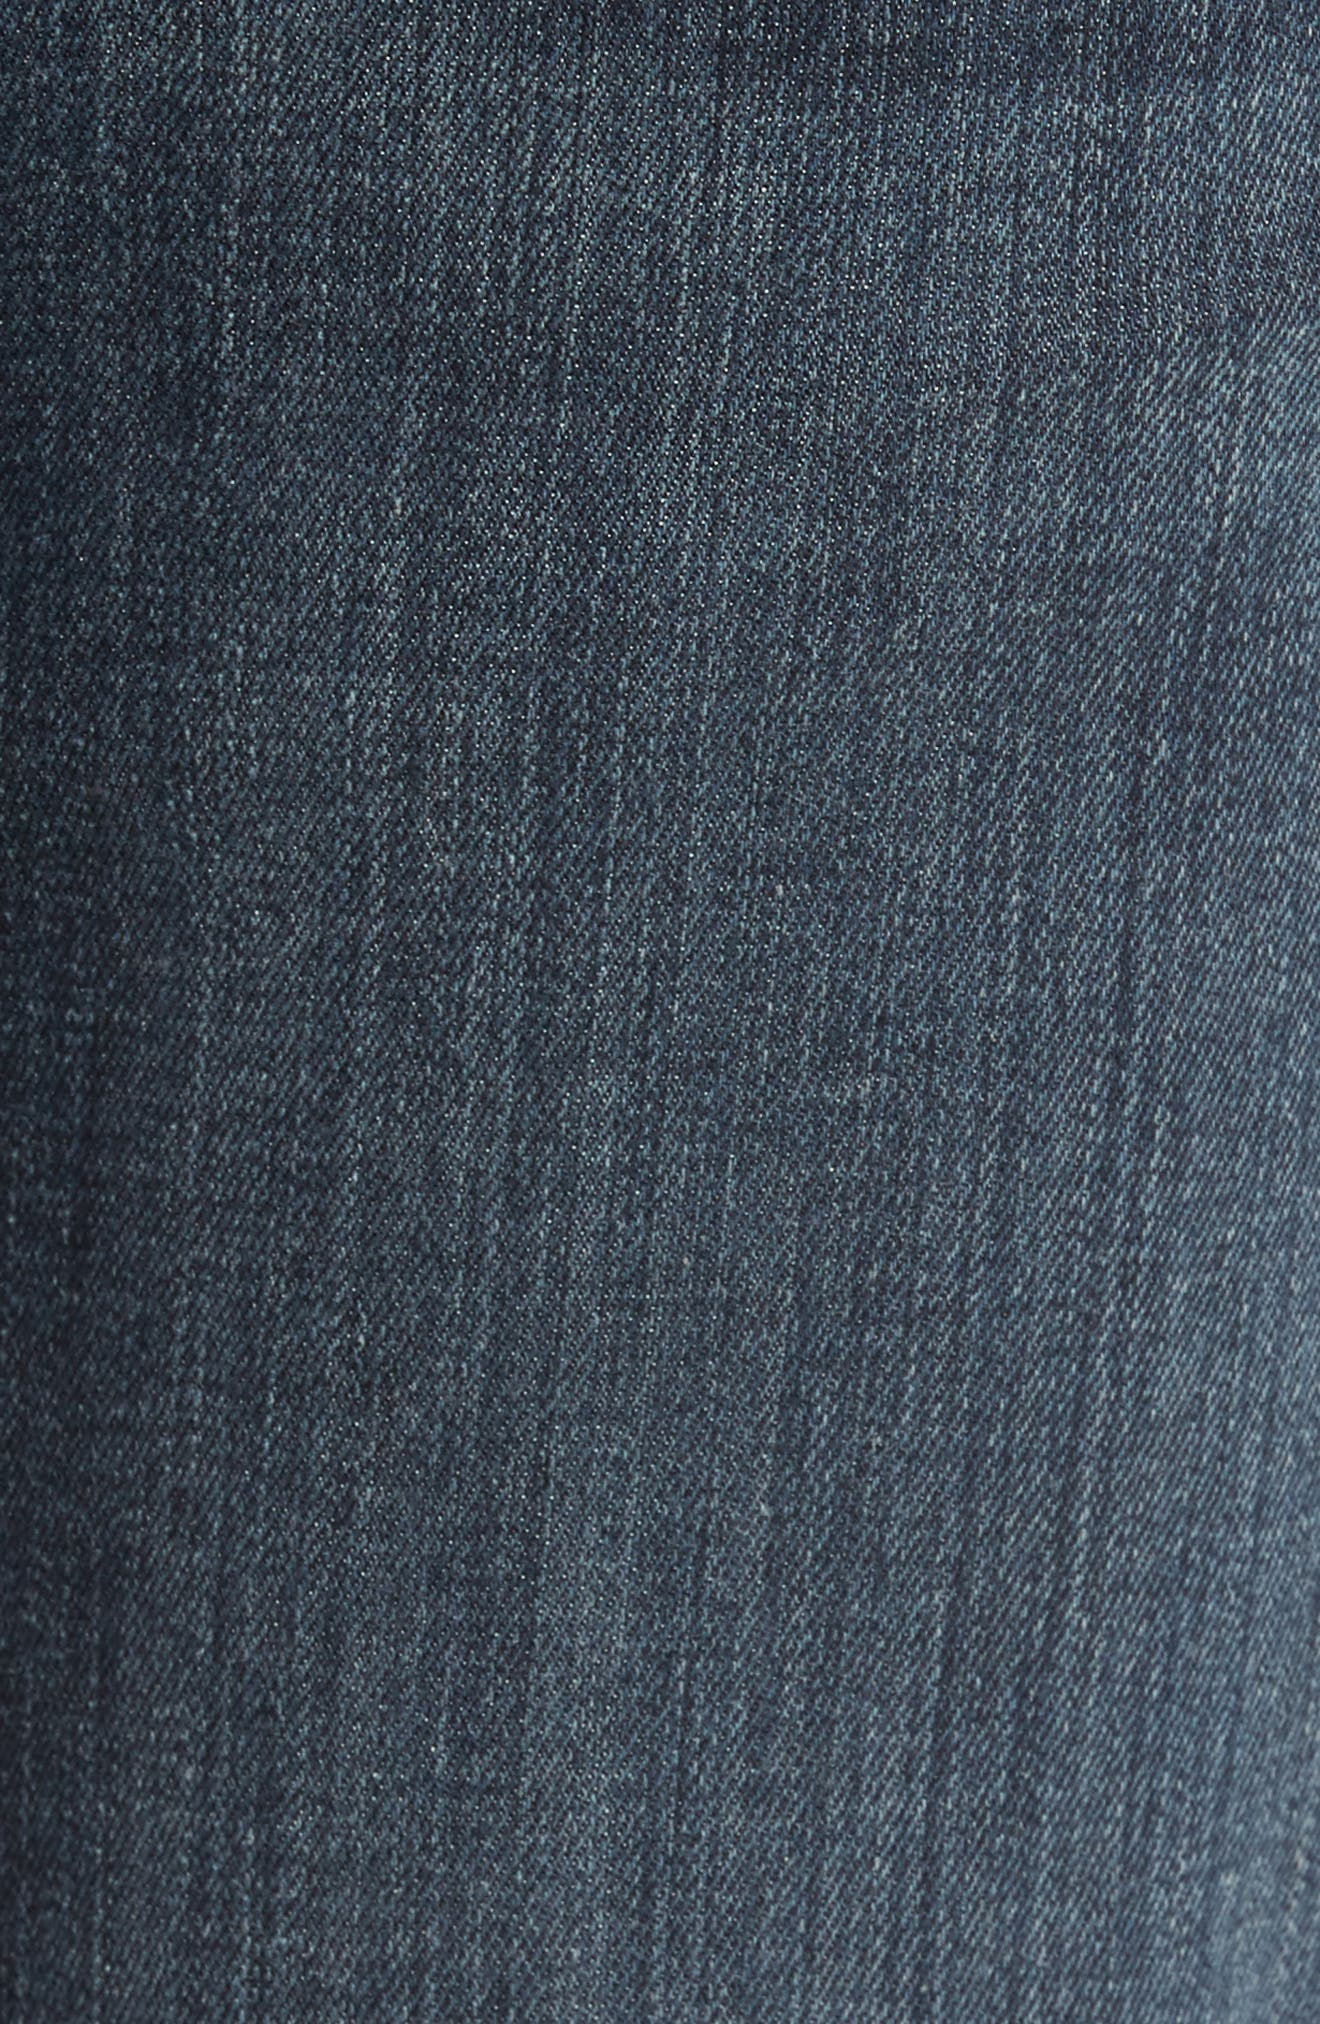 5011 Relaxed Fit Jeans,                             Alternate thumbnail 5, color,                             400